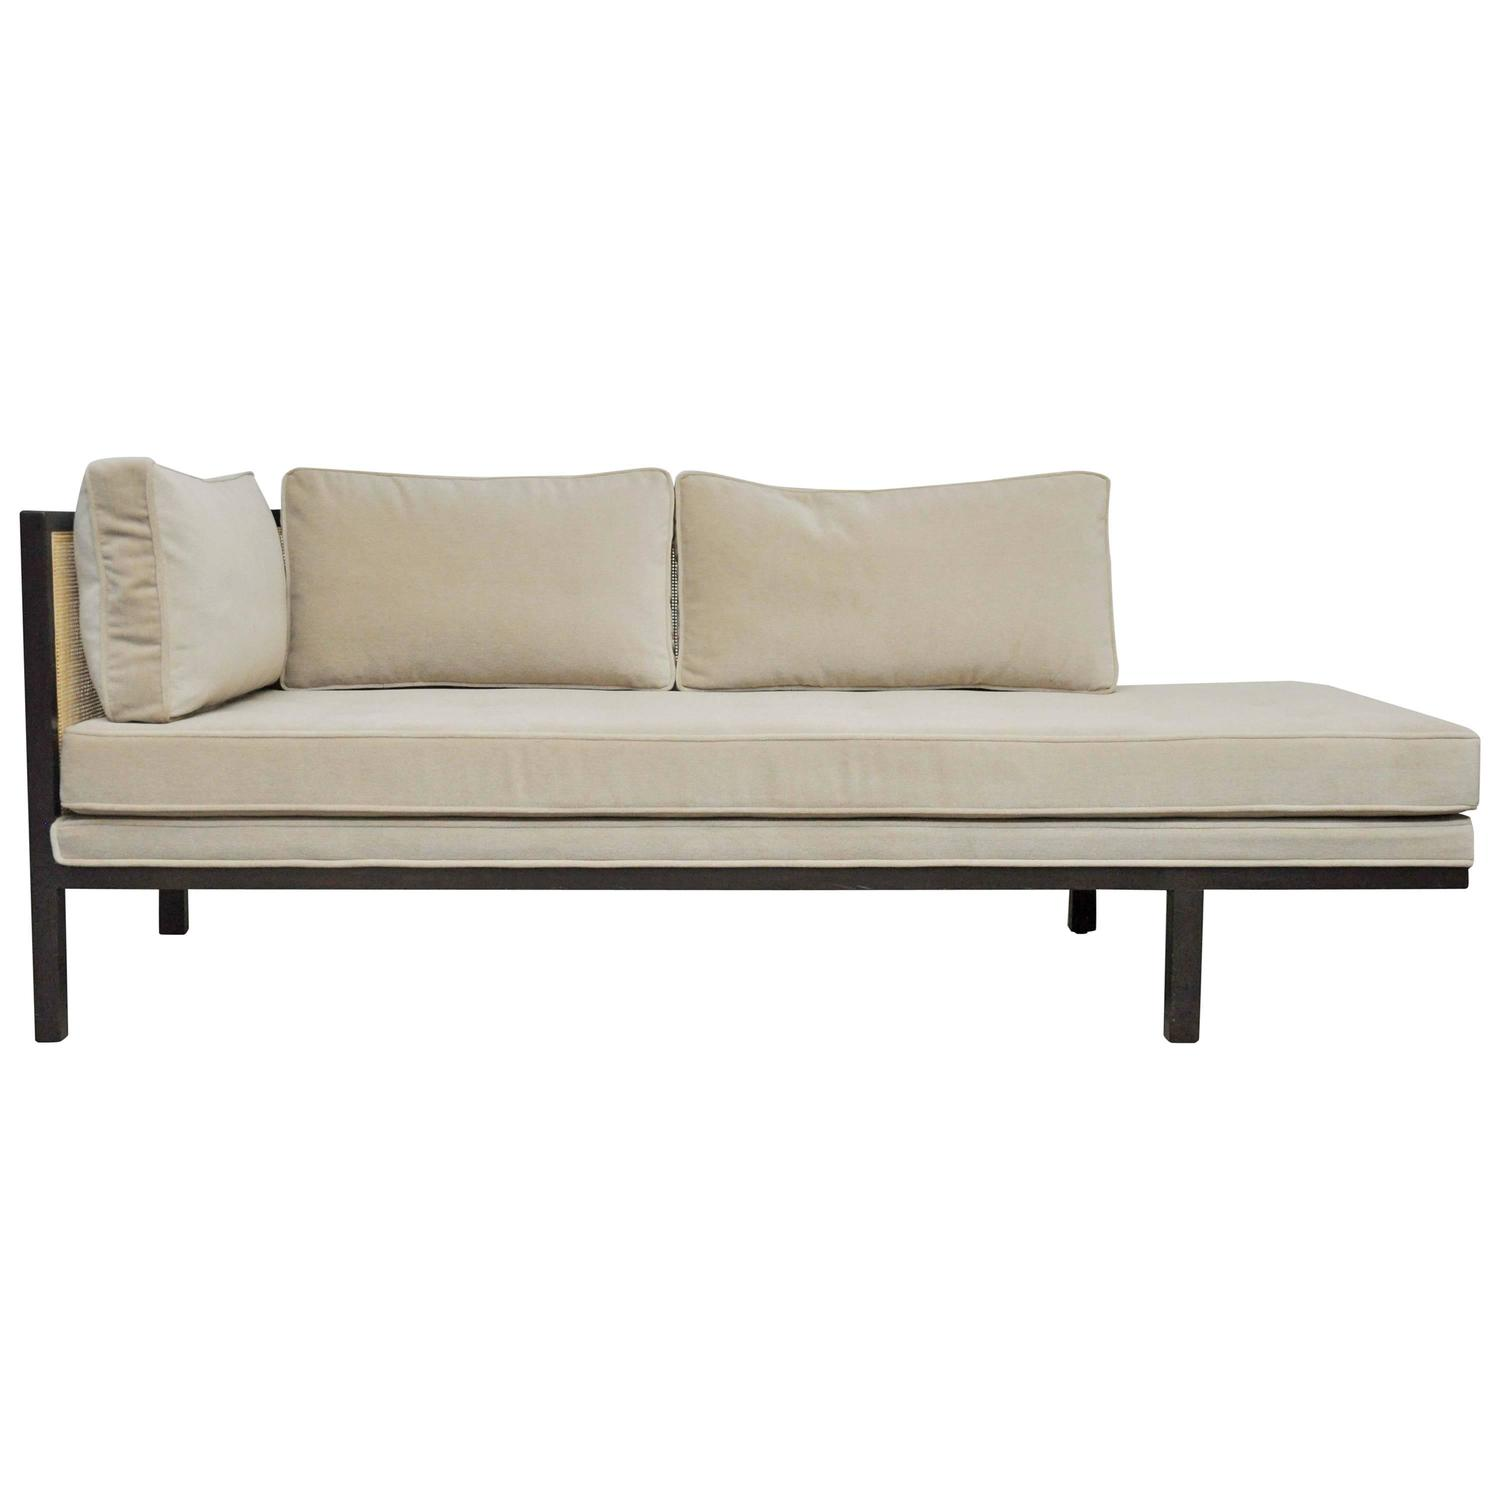 Dunbar chaise longue by edward wormley at 1stdibs for 1 zitsbank met chaise longue